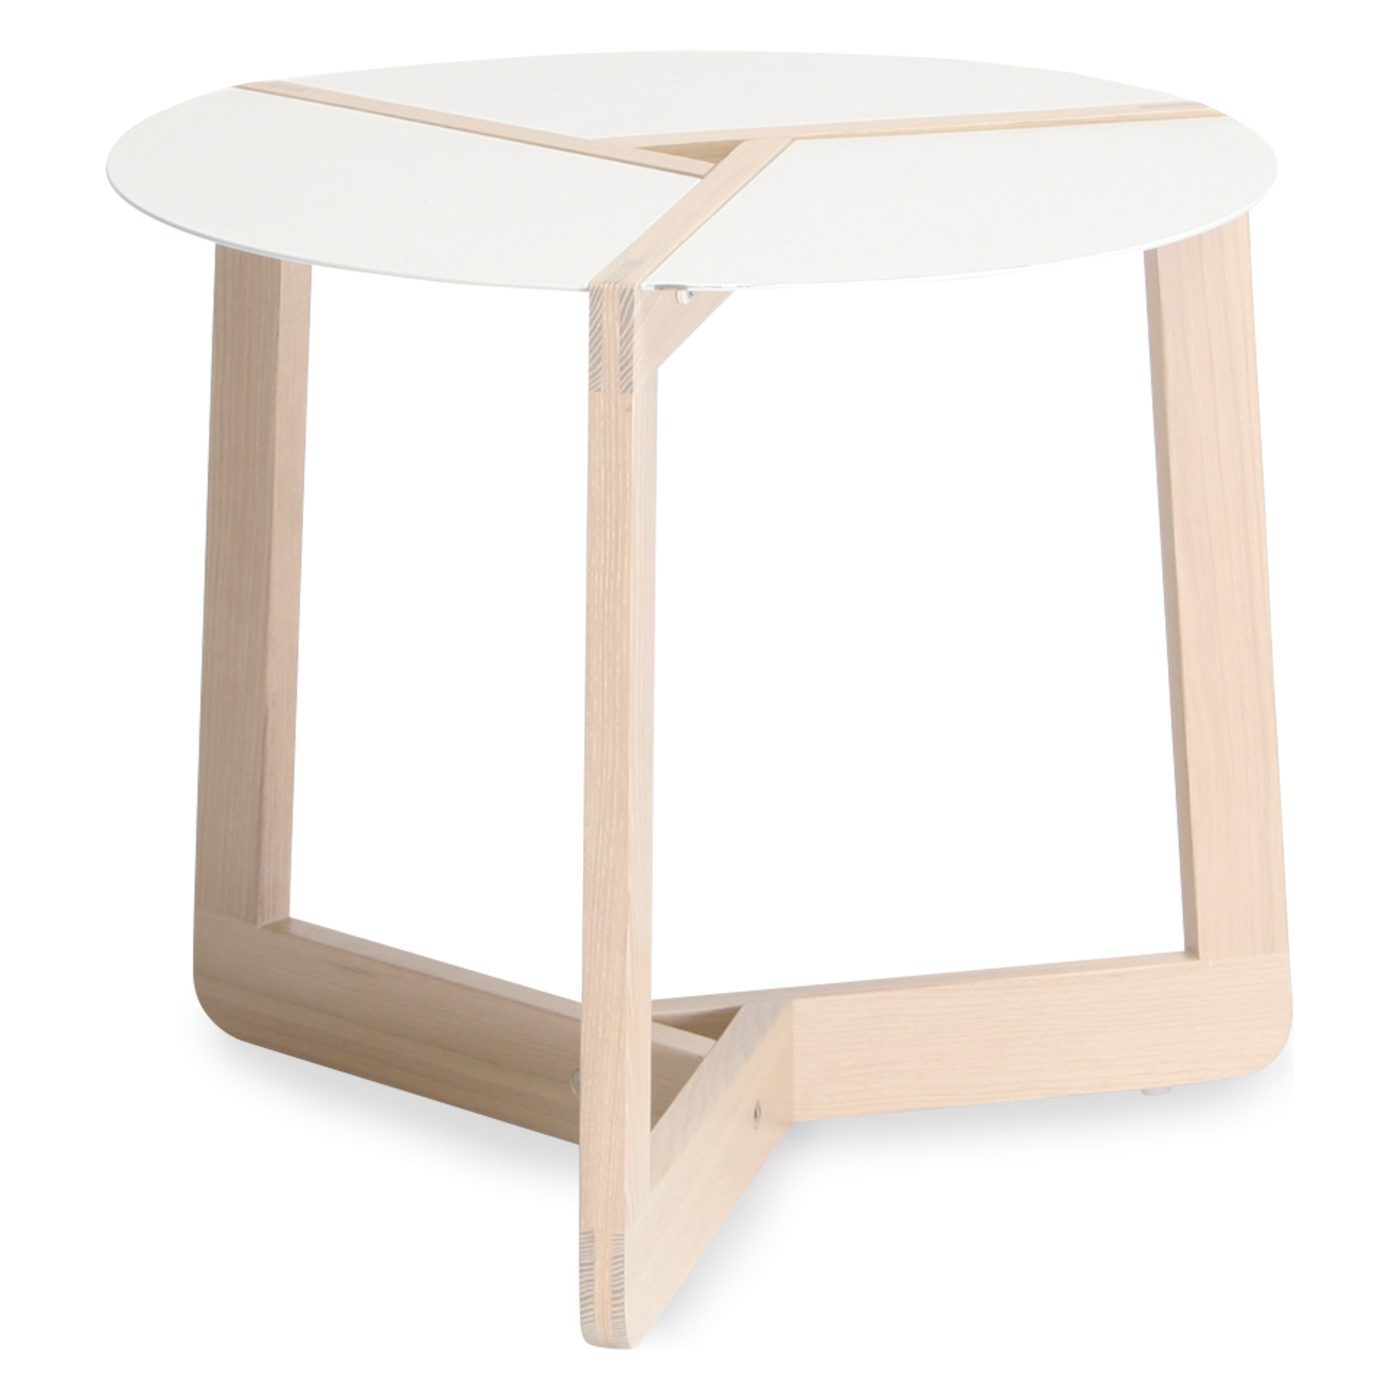 traditional small white side table round blu dot pedestal accent home entertainment furniture narrow sideboard for hallway whole tablecloths weddings cordless end lamps double